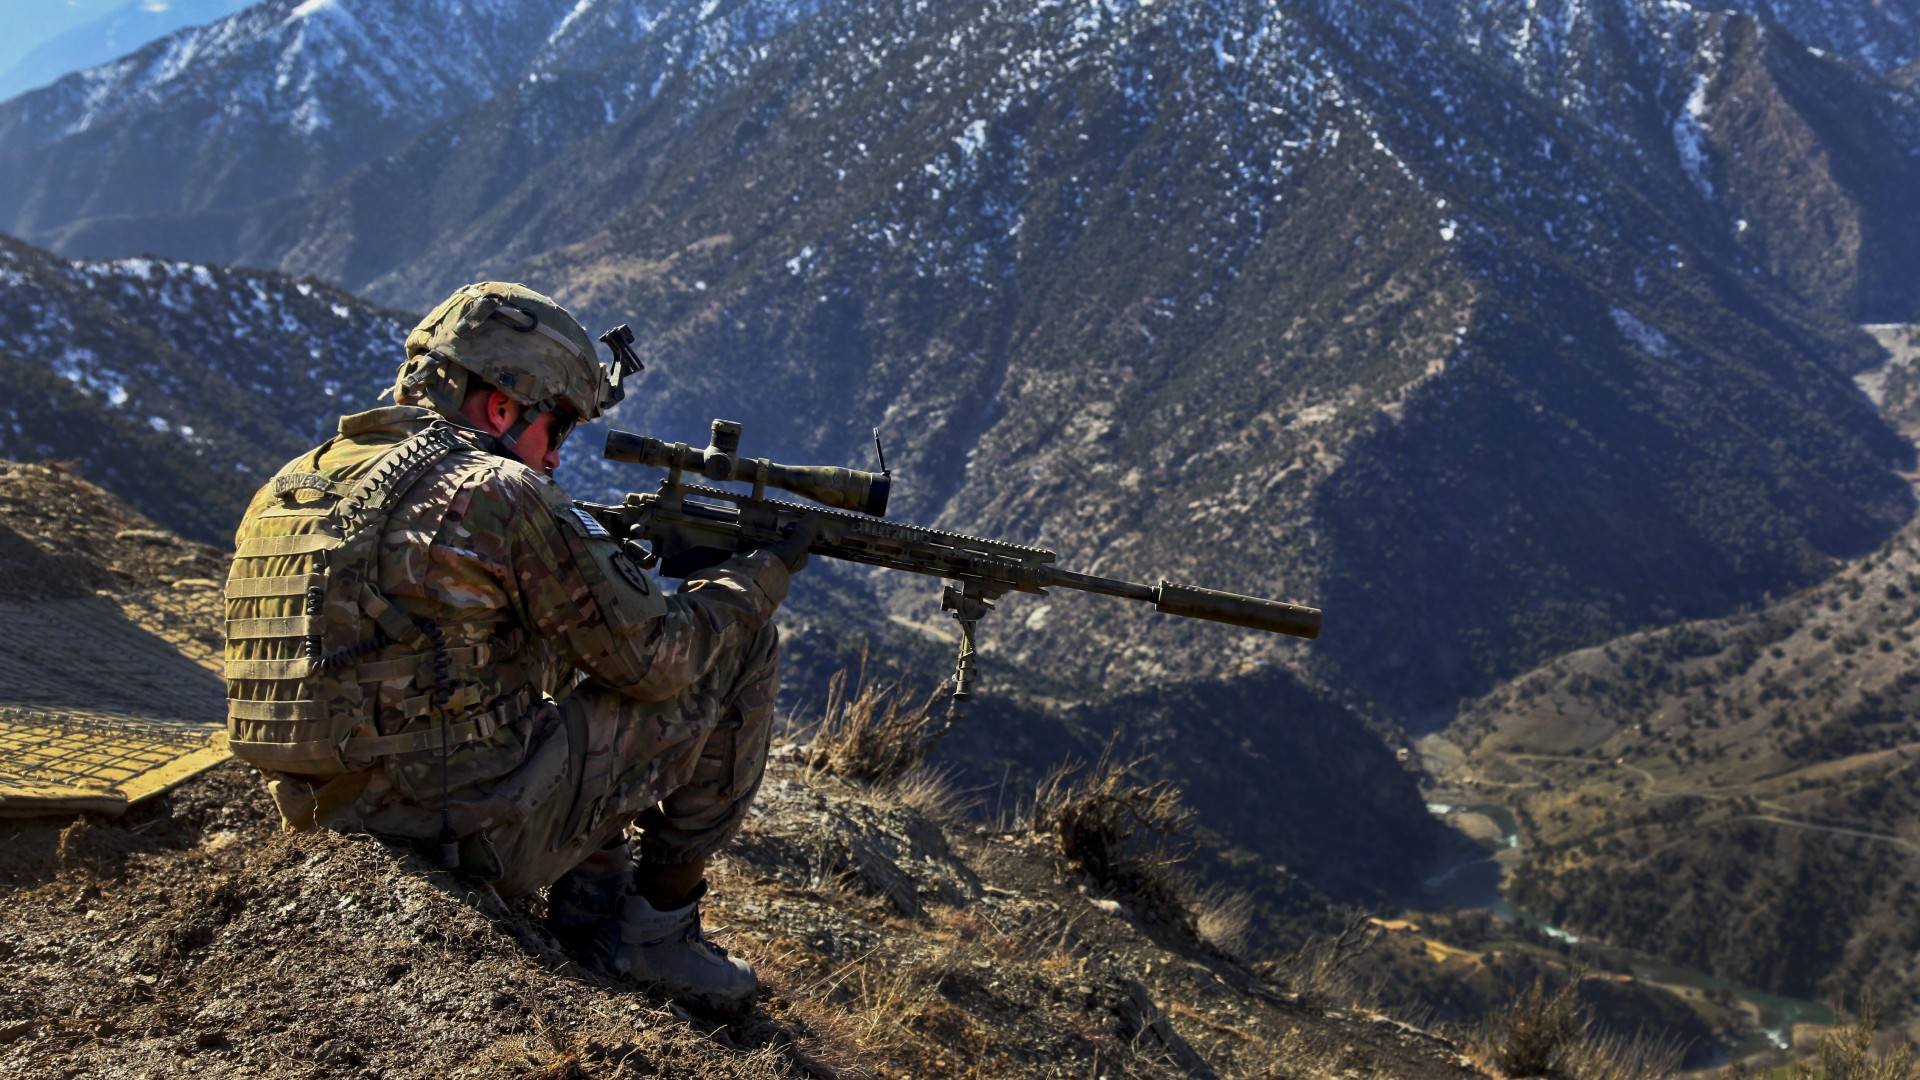 Barrett, sniper, soldier, m82, rifle, army, mountain, camo (horizontal)